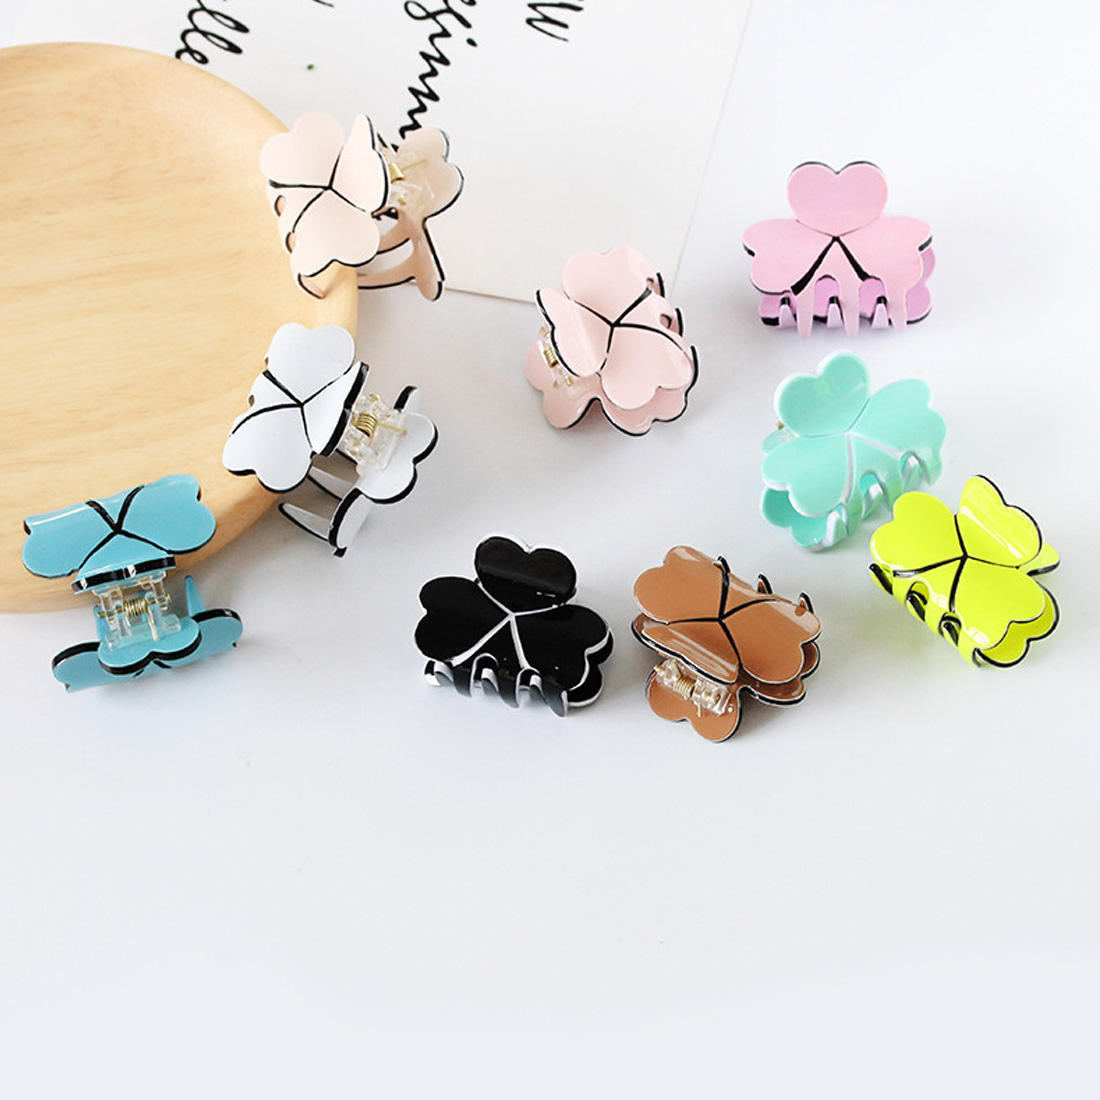 Hairpin Clover Acrylic Four Leaf Hairpins Colorful Hair Claws Clip Clamp Barrettes Cute Girl Lady Pins Styling Tools